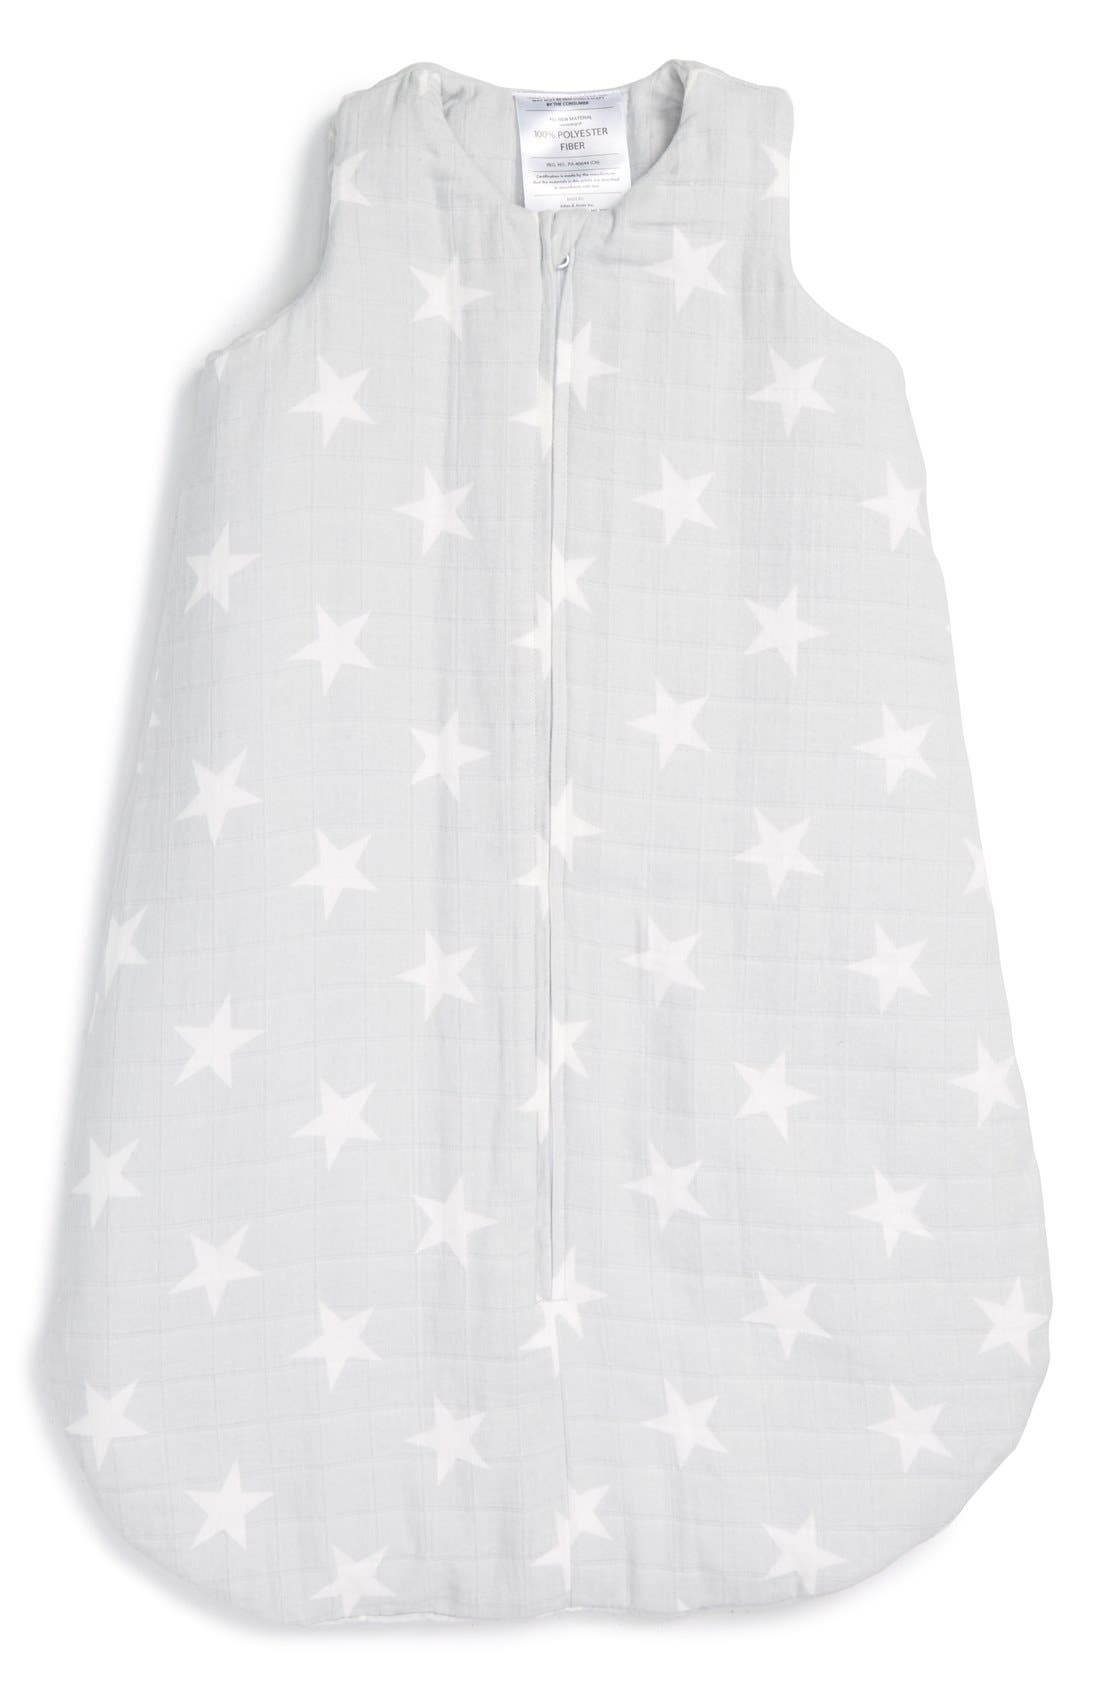 Alternate Image 1 Selected - aden + anais Flannel & Muslin Wearable Cold Temperature Blanket (Baby)